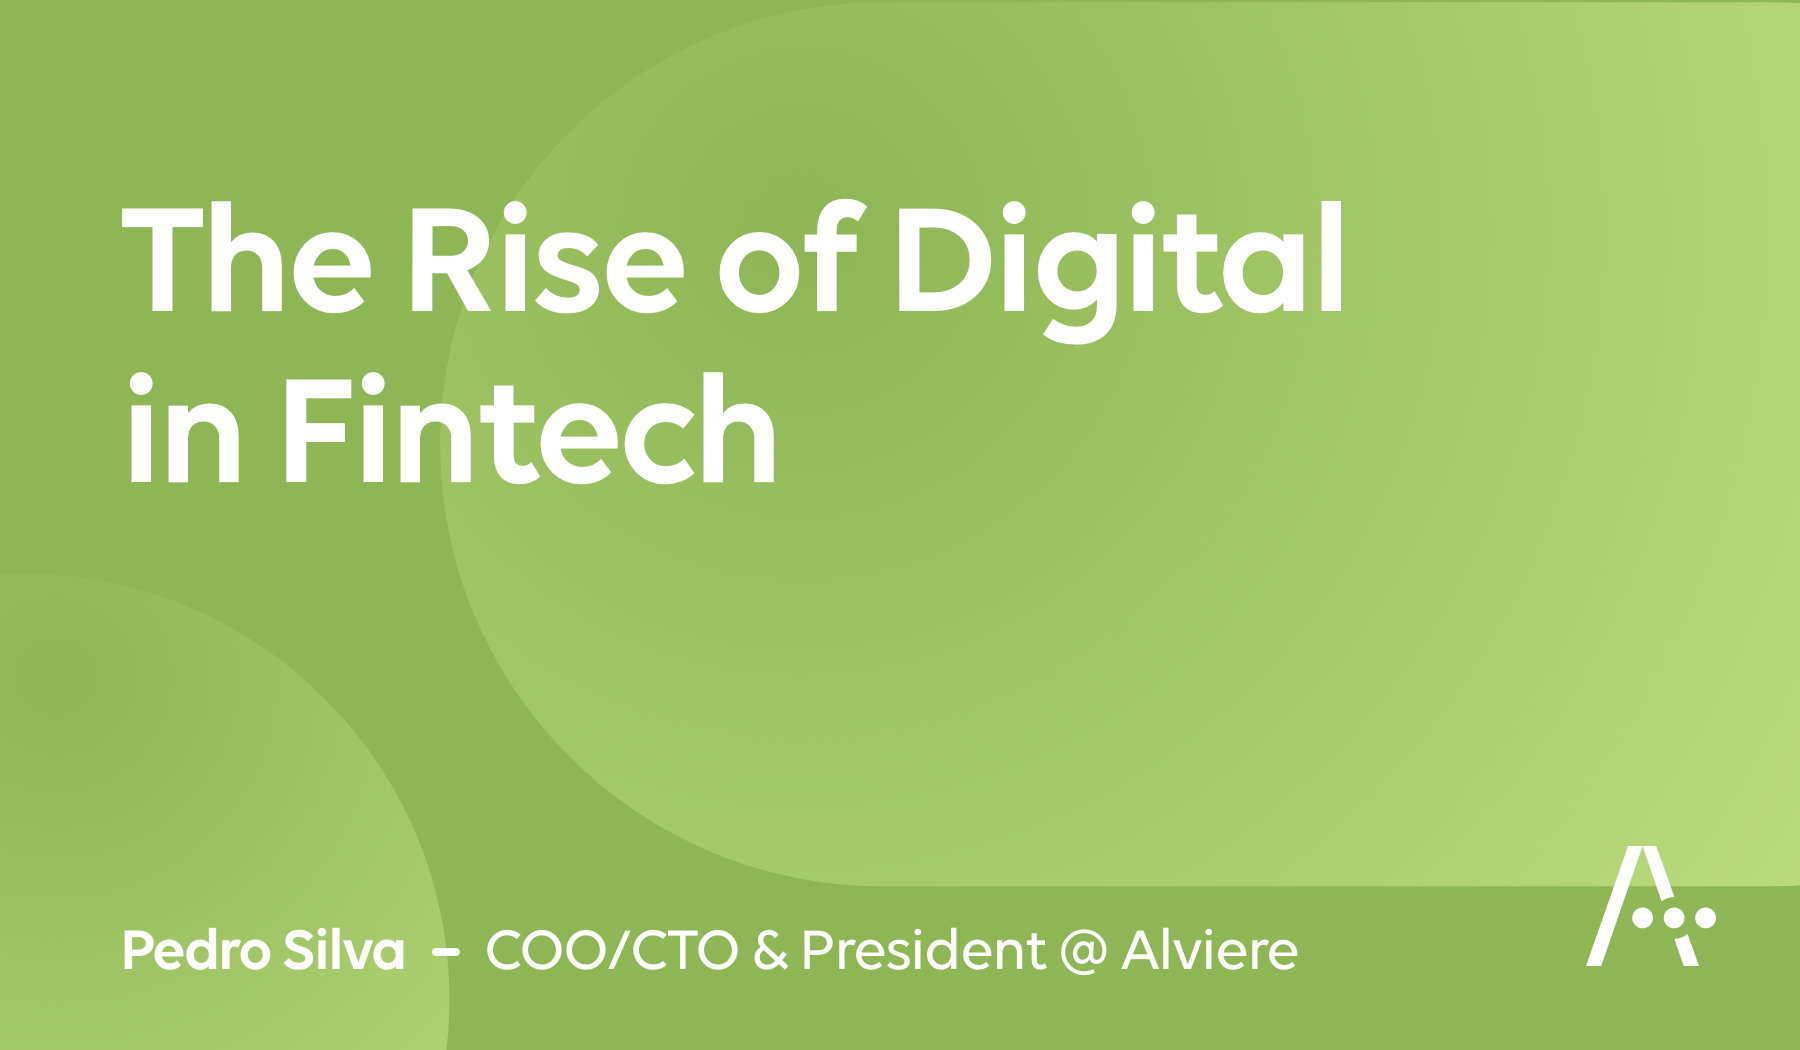 the-rise-of-digital-in-fintech@2x